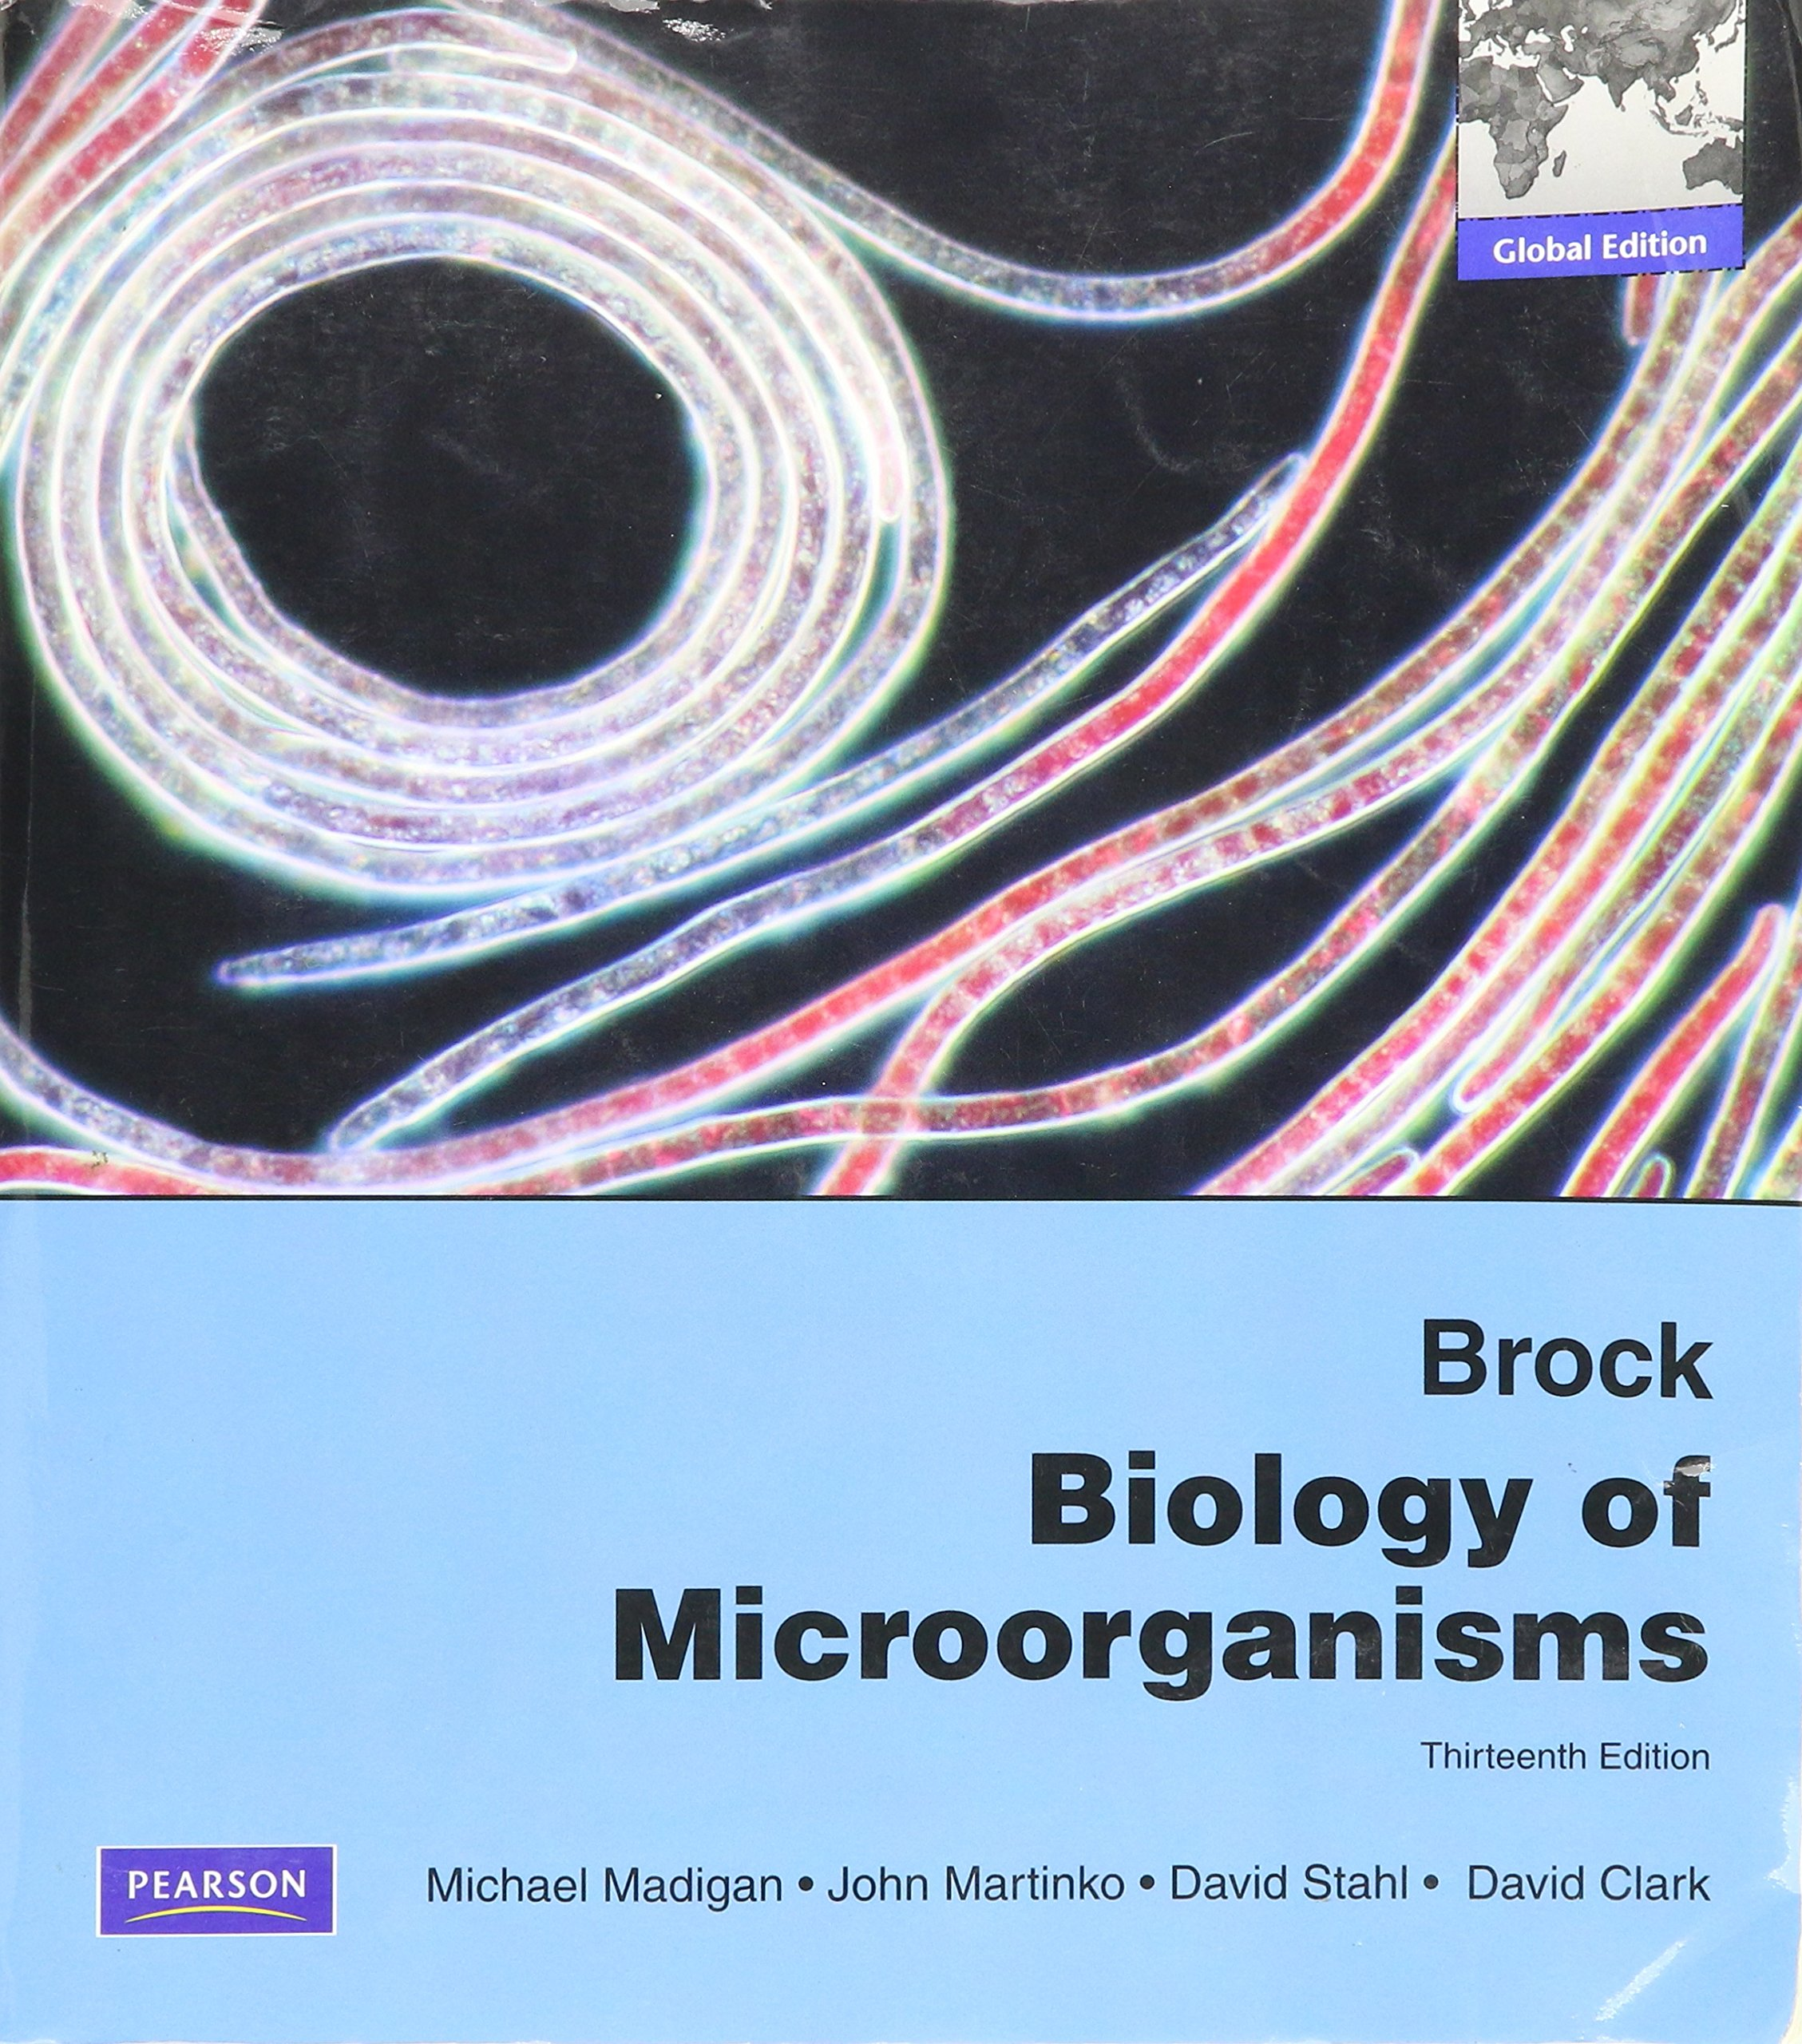 Brock Biology of Microorganisms 13th Edition: Amazon.co.uk: Michael T.;  Martinko, John M.; Bender, Kelly S.; Buckley, Daniel H.; St Madigan: Books